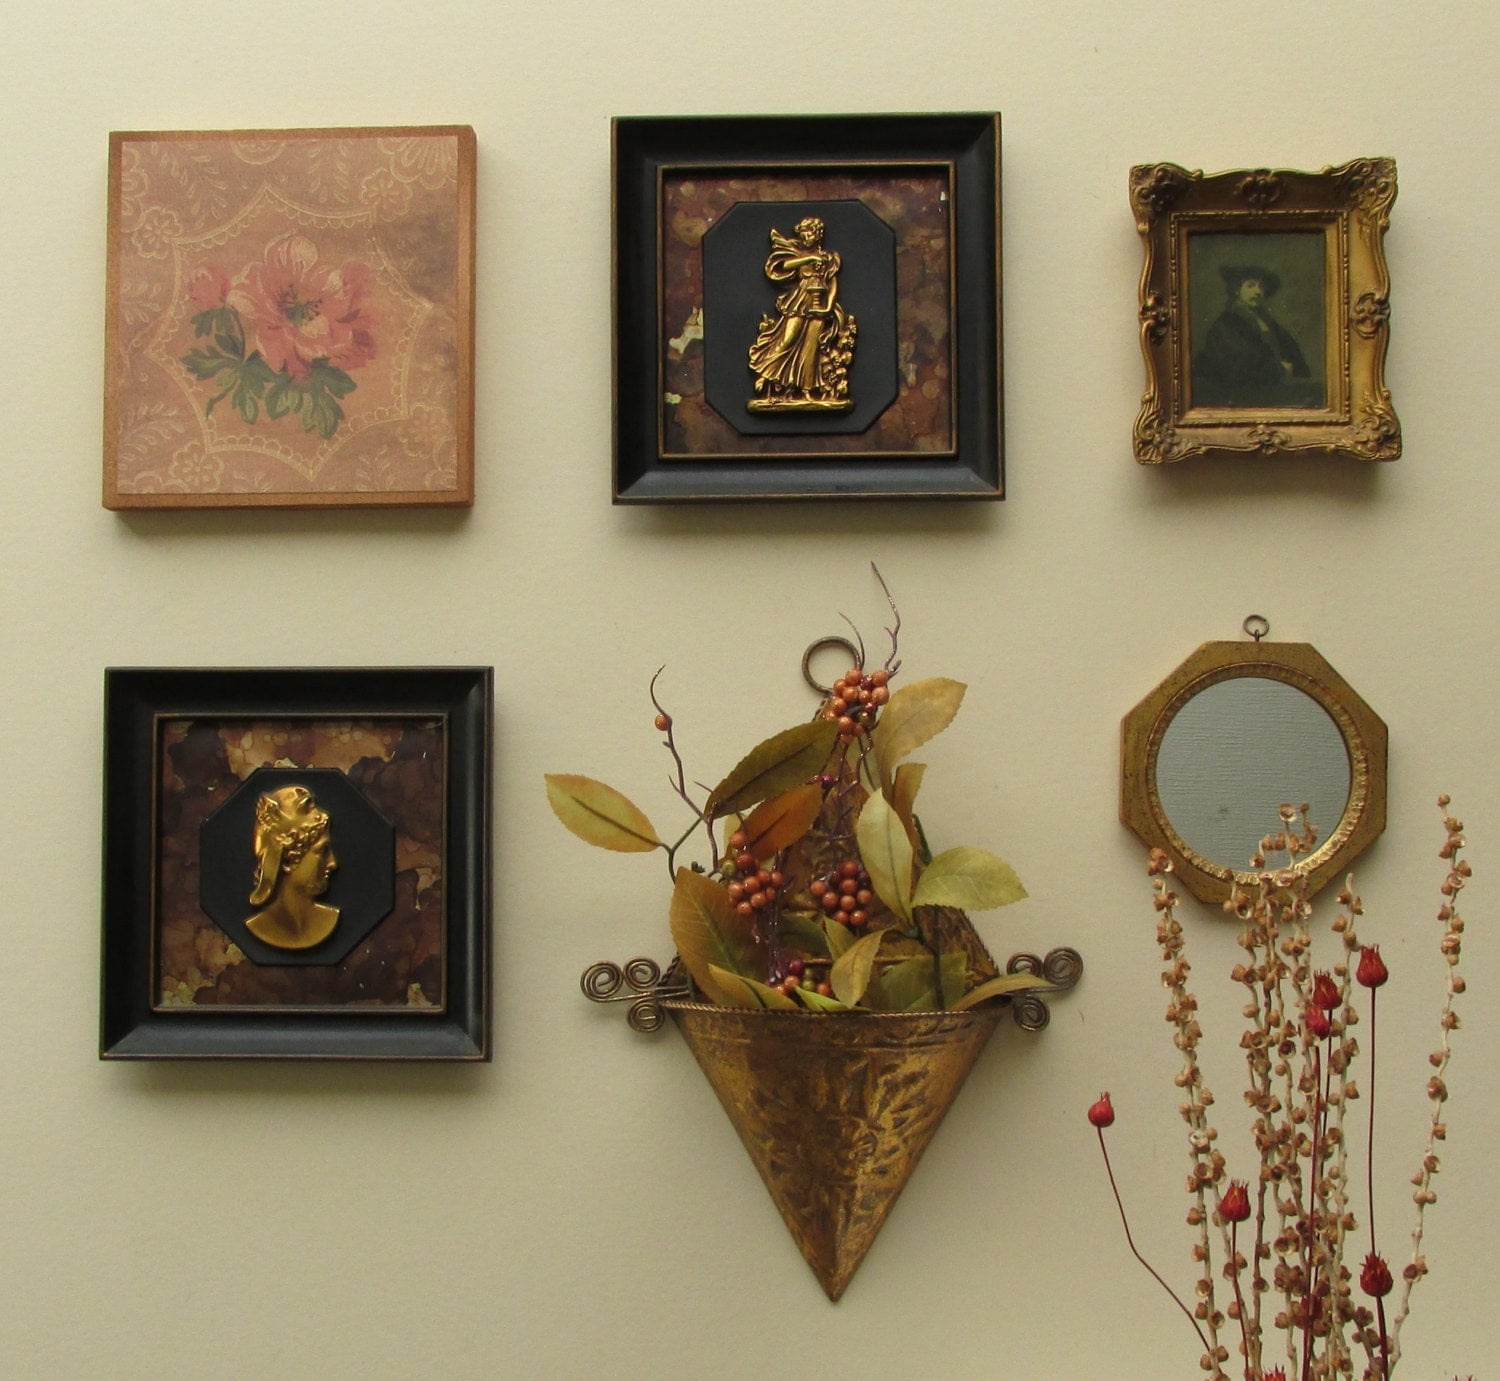 wall art in a flash - Victorian Decorative - 6 pc wall gallery with mirror- feng shui